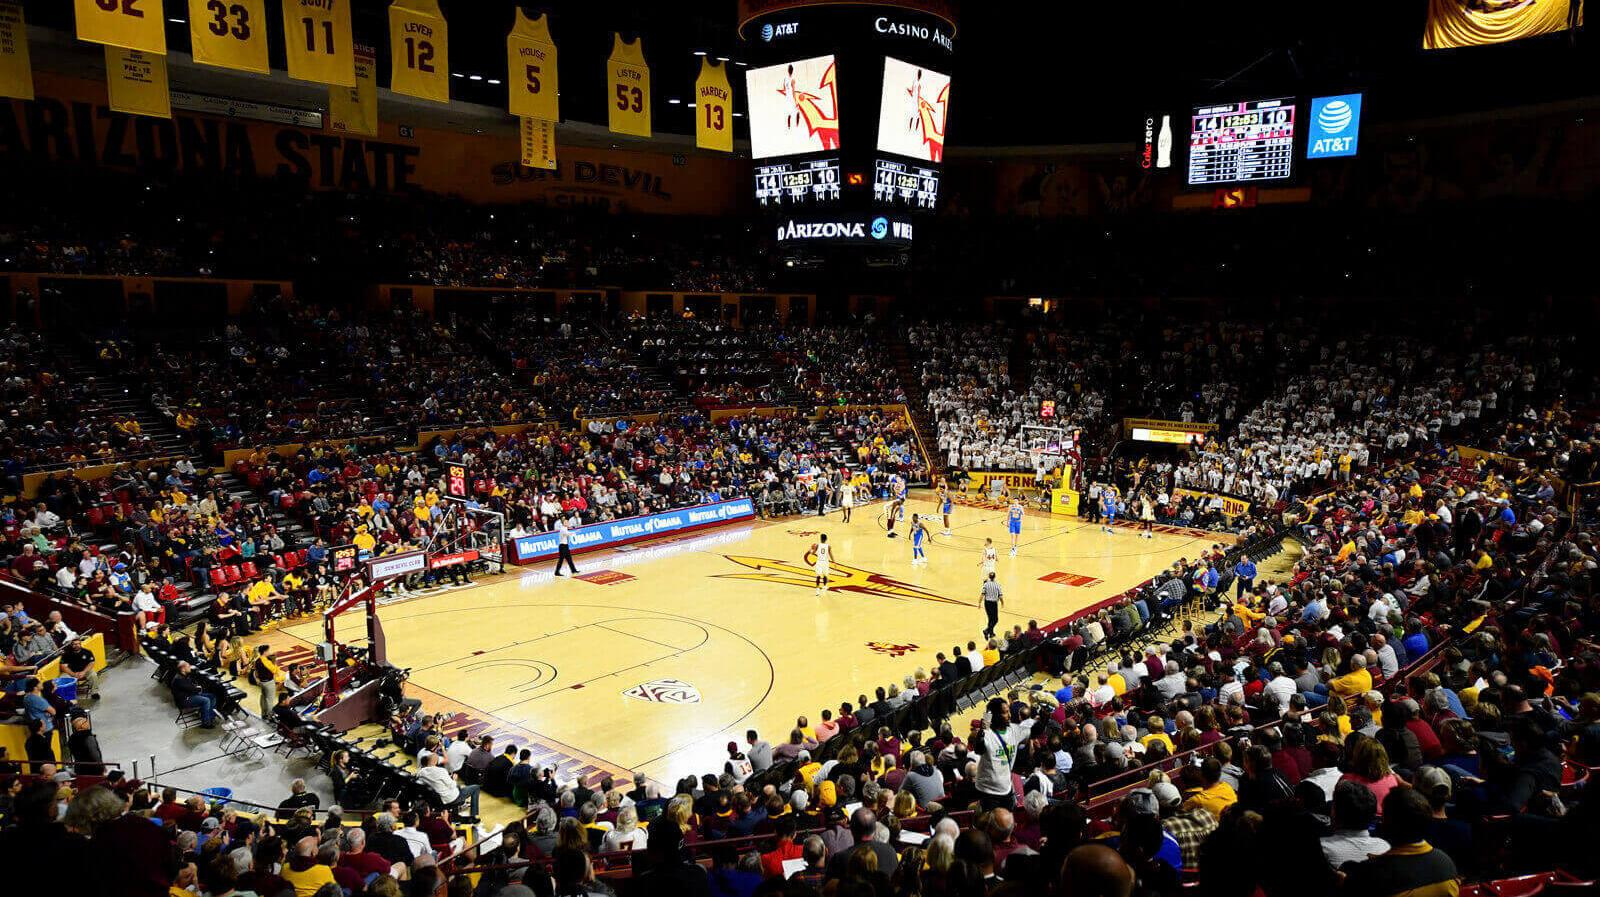 The crowd watches a student basketball game at Wells Fargo Arena